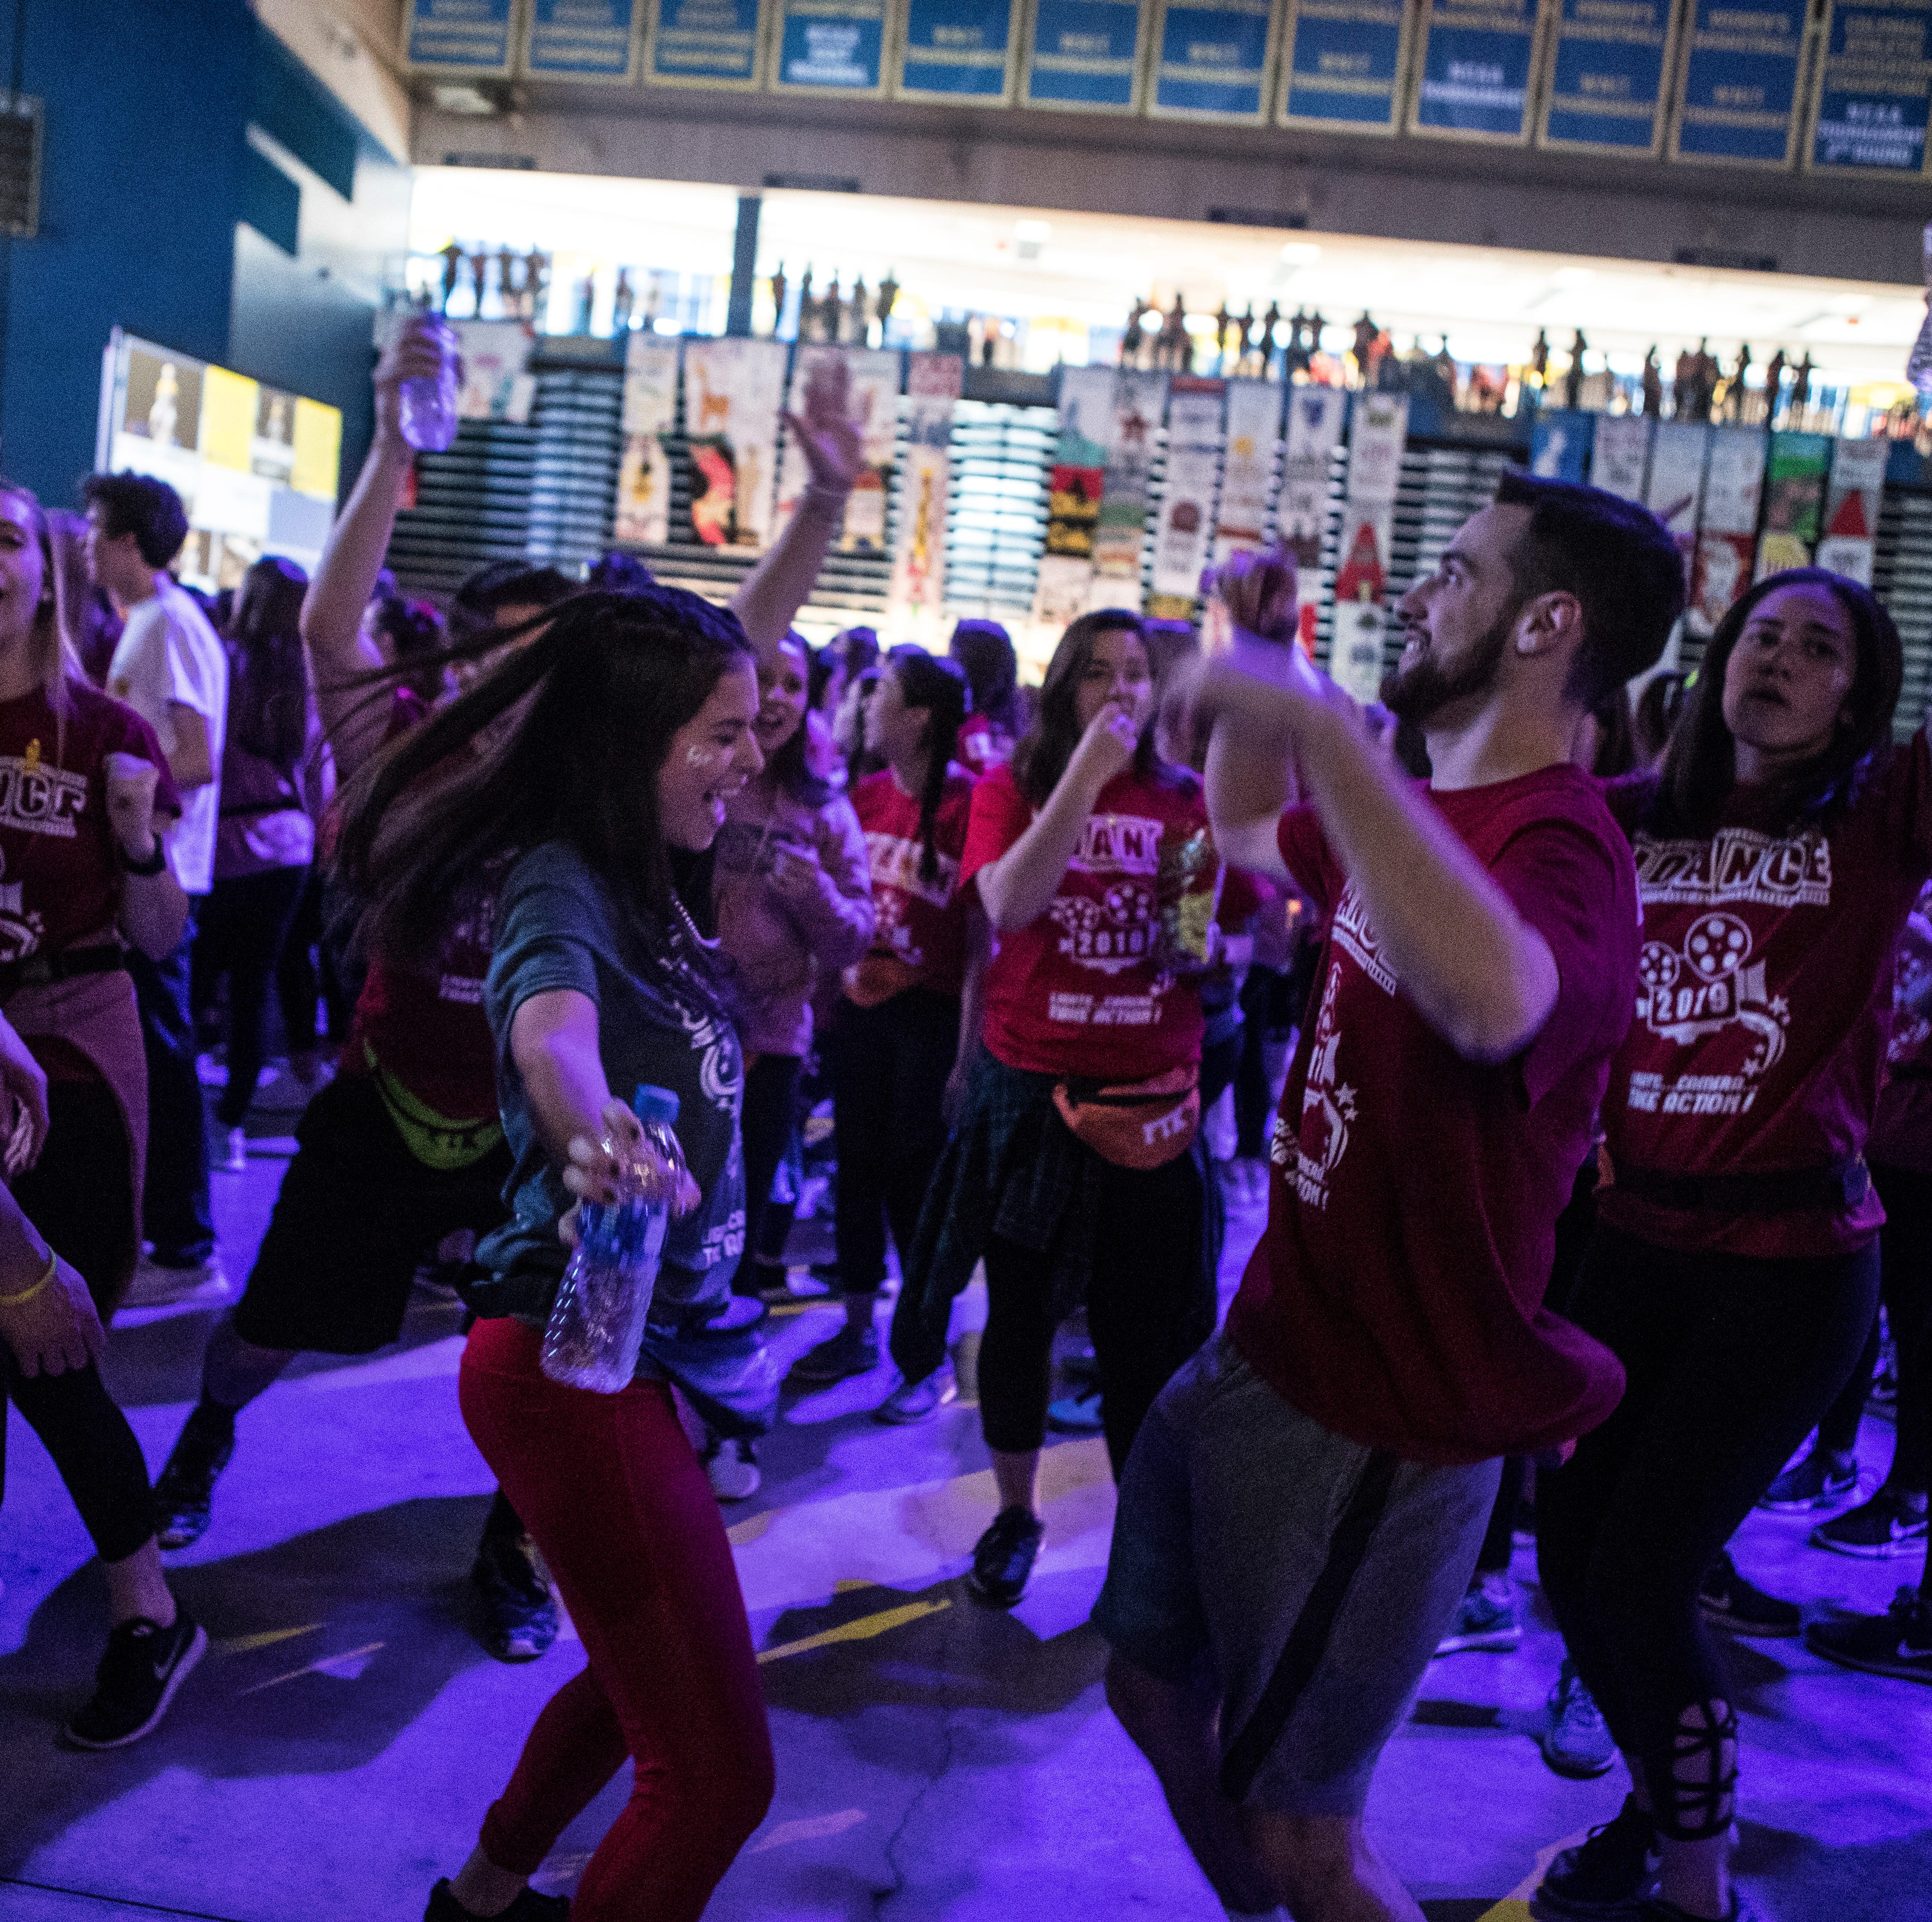 Dance marathon a mixture of joy, sadness as UD students raise money for kids with cancer